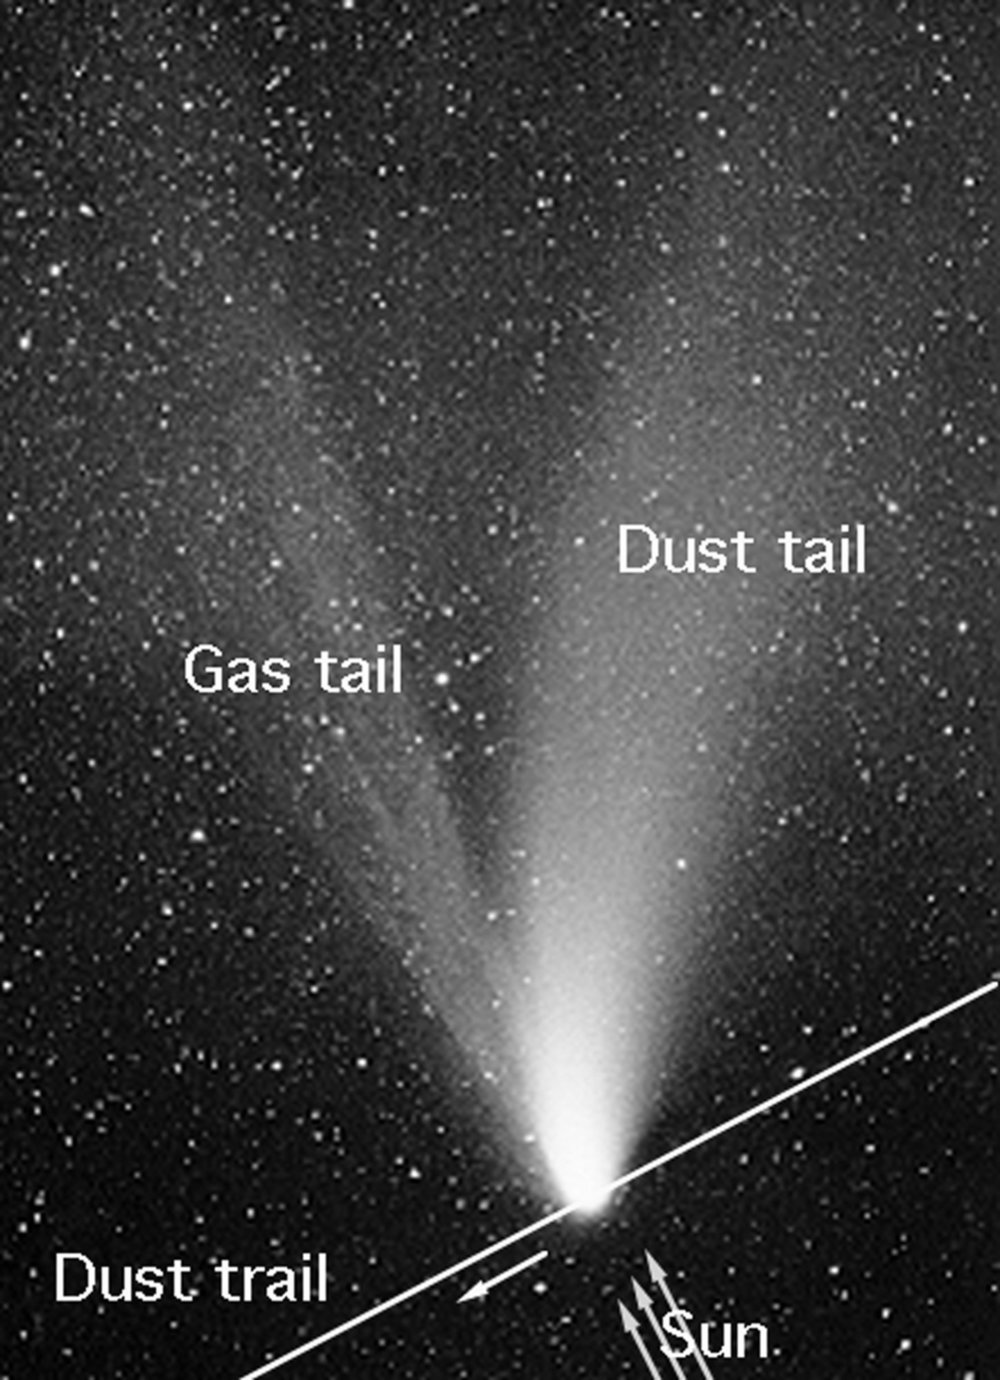 Artist's concept of a comet, with solar wind blowing back the coma into a tail. – Image Credit: NASA, CC BY-ND